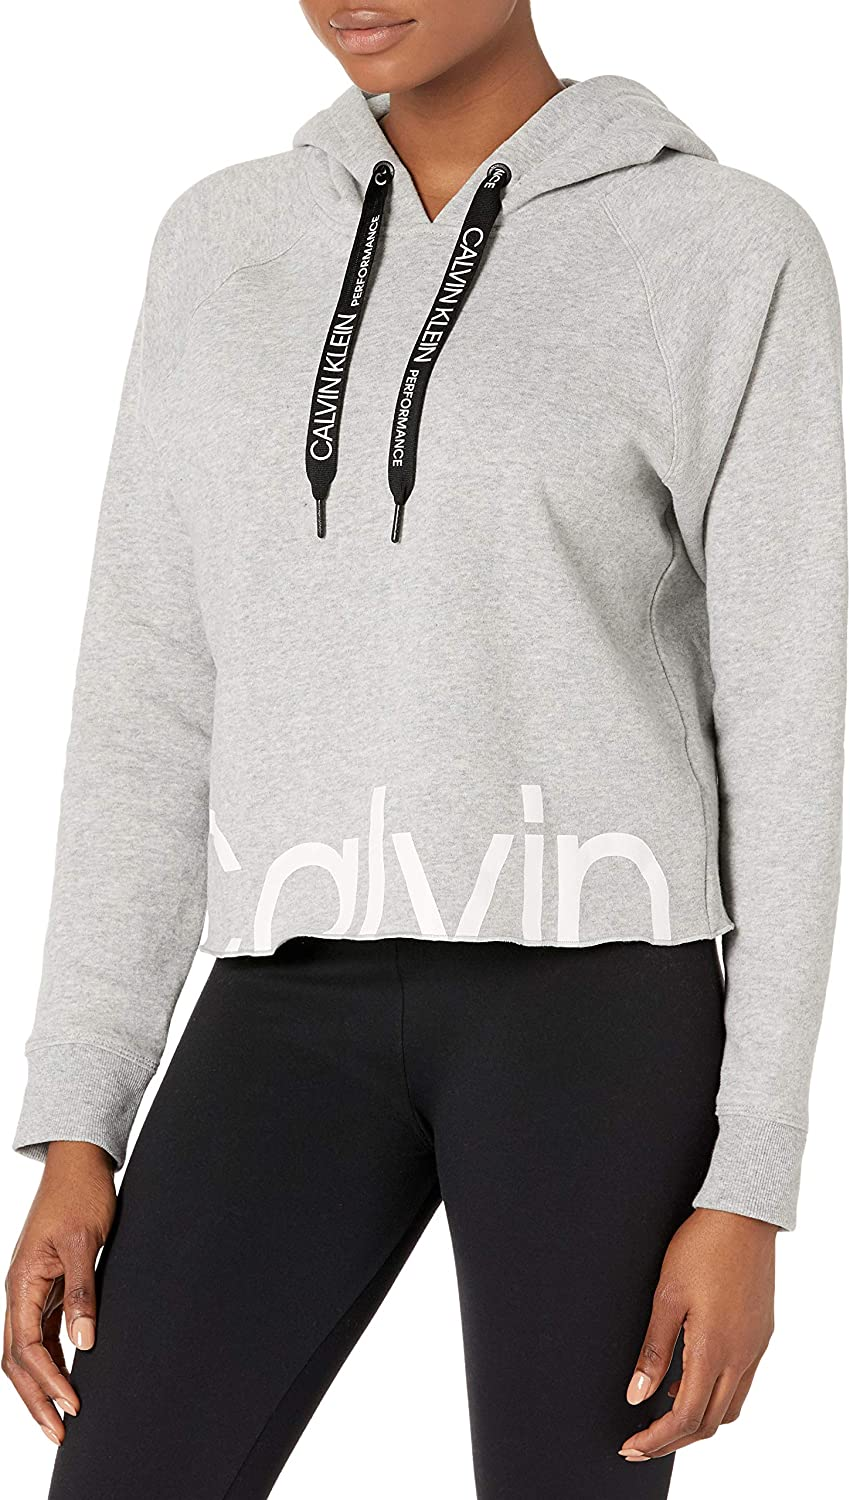 Calvin Klein Women's Long Department store Clearance SALE Limited time Sleeve Up Sweatshirt Hooded Zip